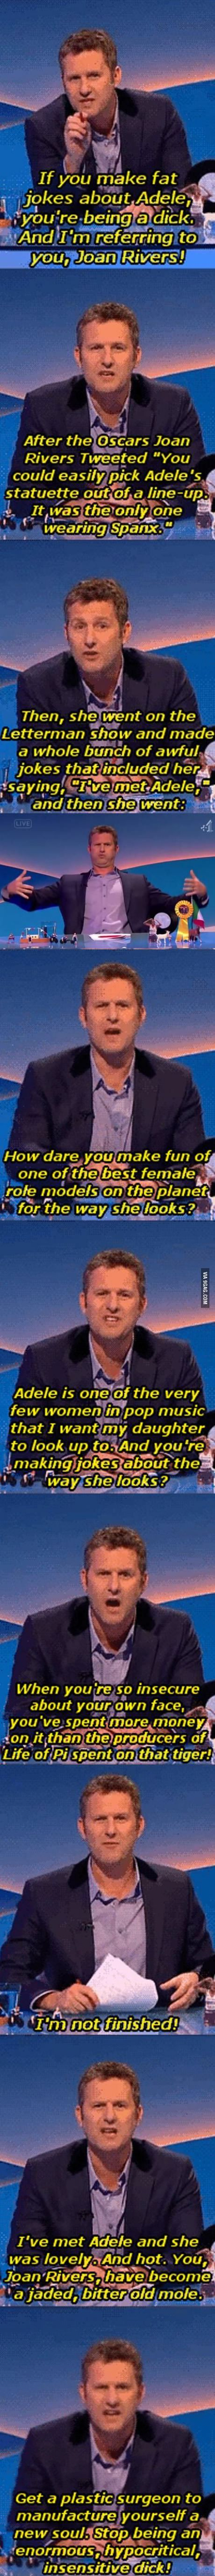 Comedian Destroys Joan Rivers Over Adele Comments...